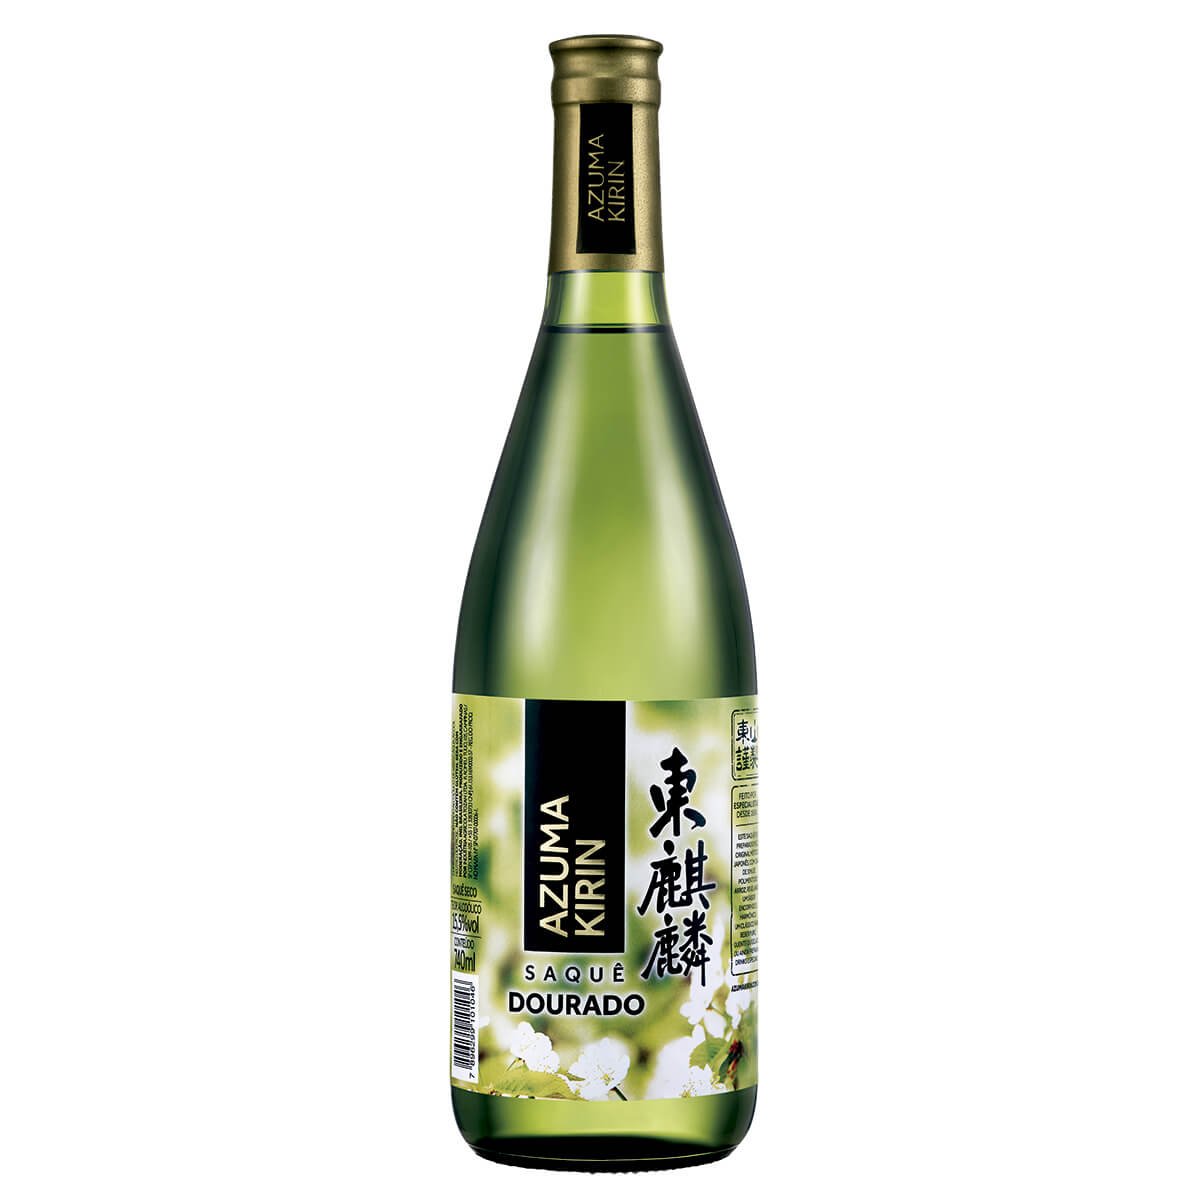 SAQUE AK NAMAZAKE 740 ML CX C/06